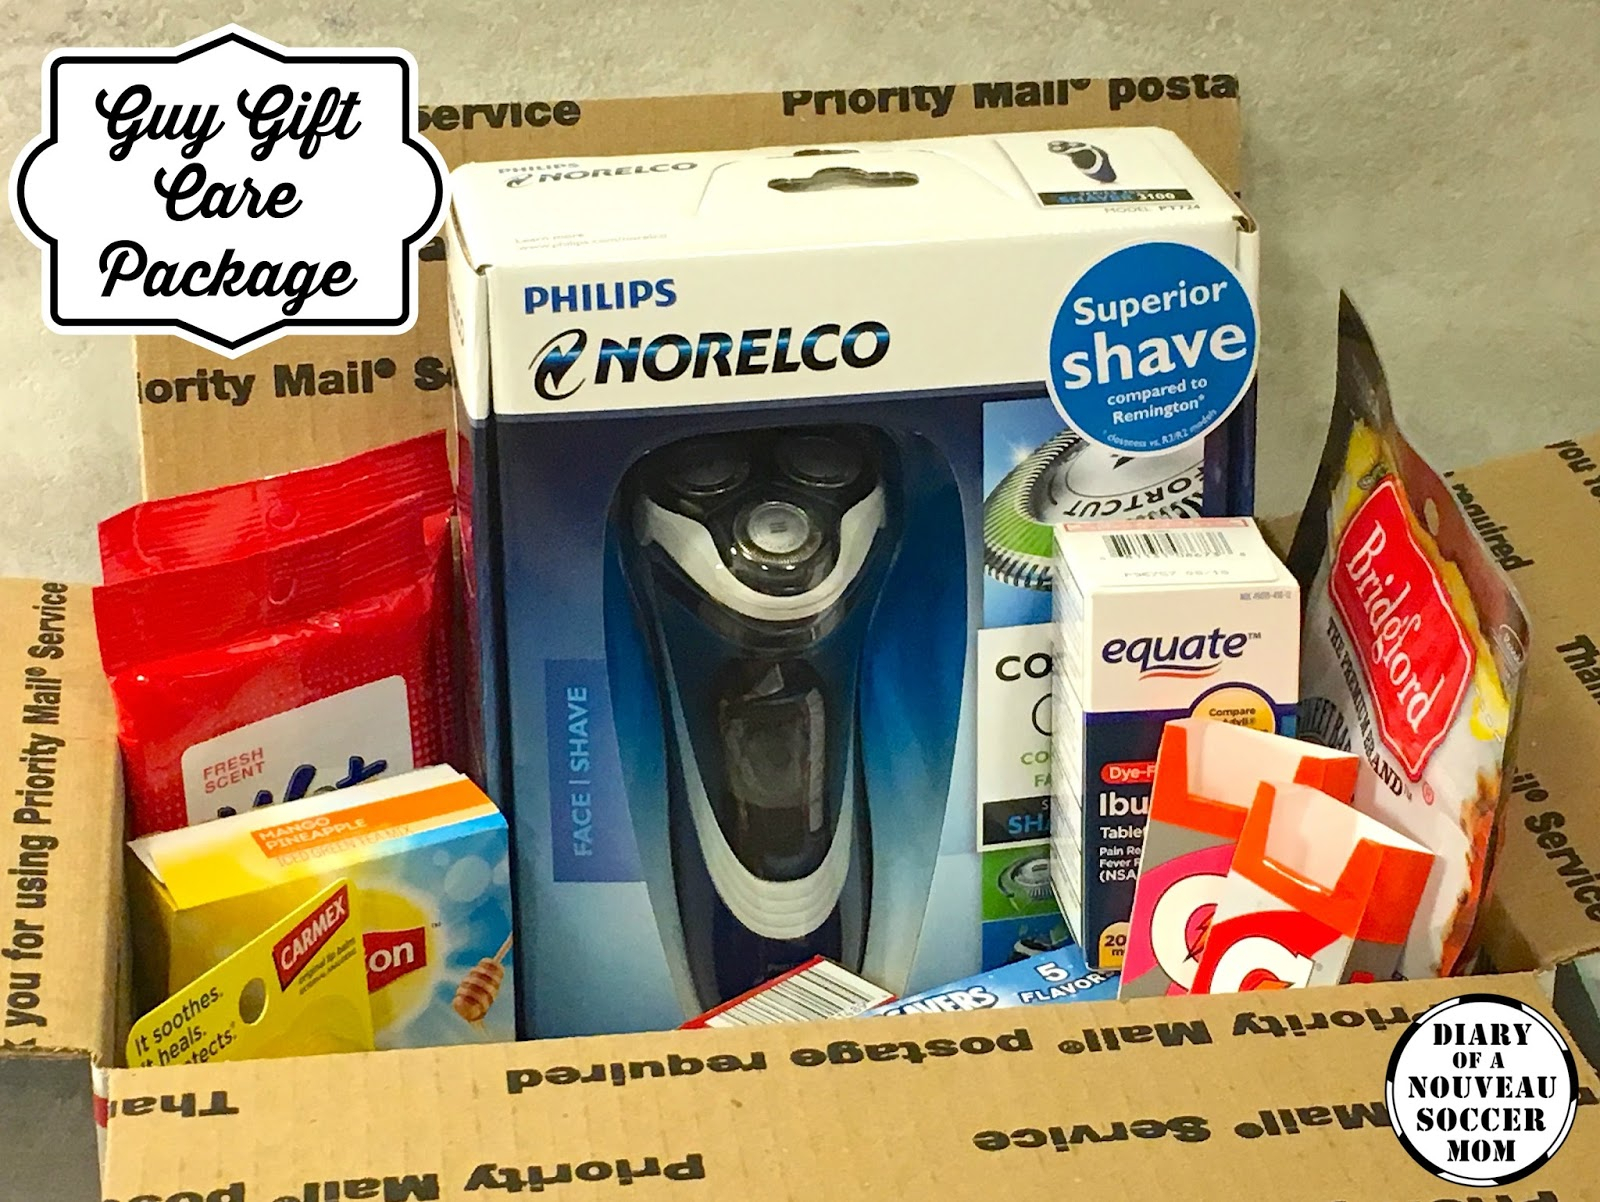 10 Unique Care Package Ideas For Guys the diary of a nouveau soccer mom guy gift ideas holiday care